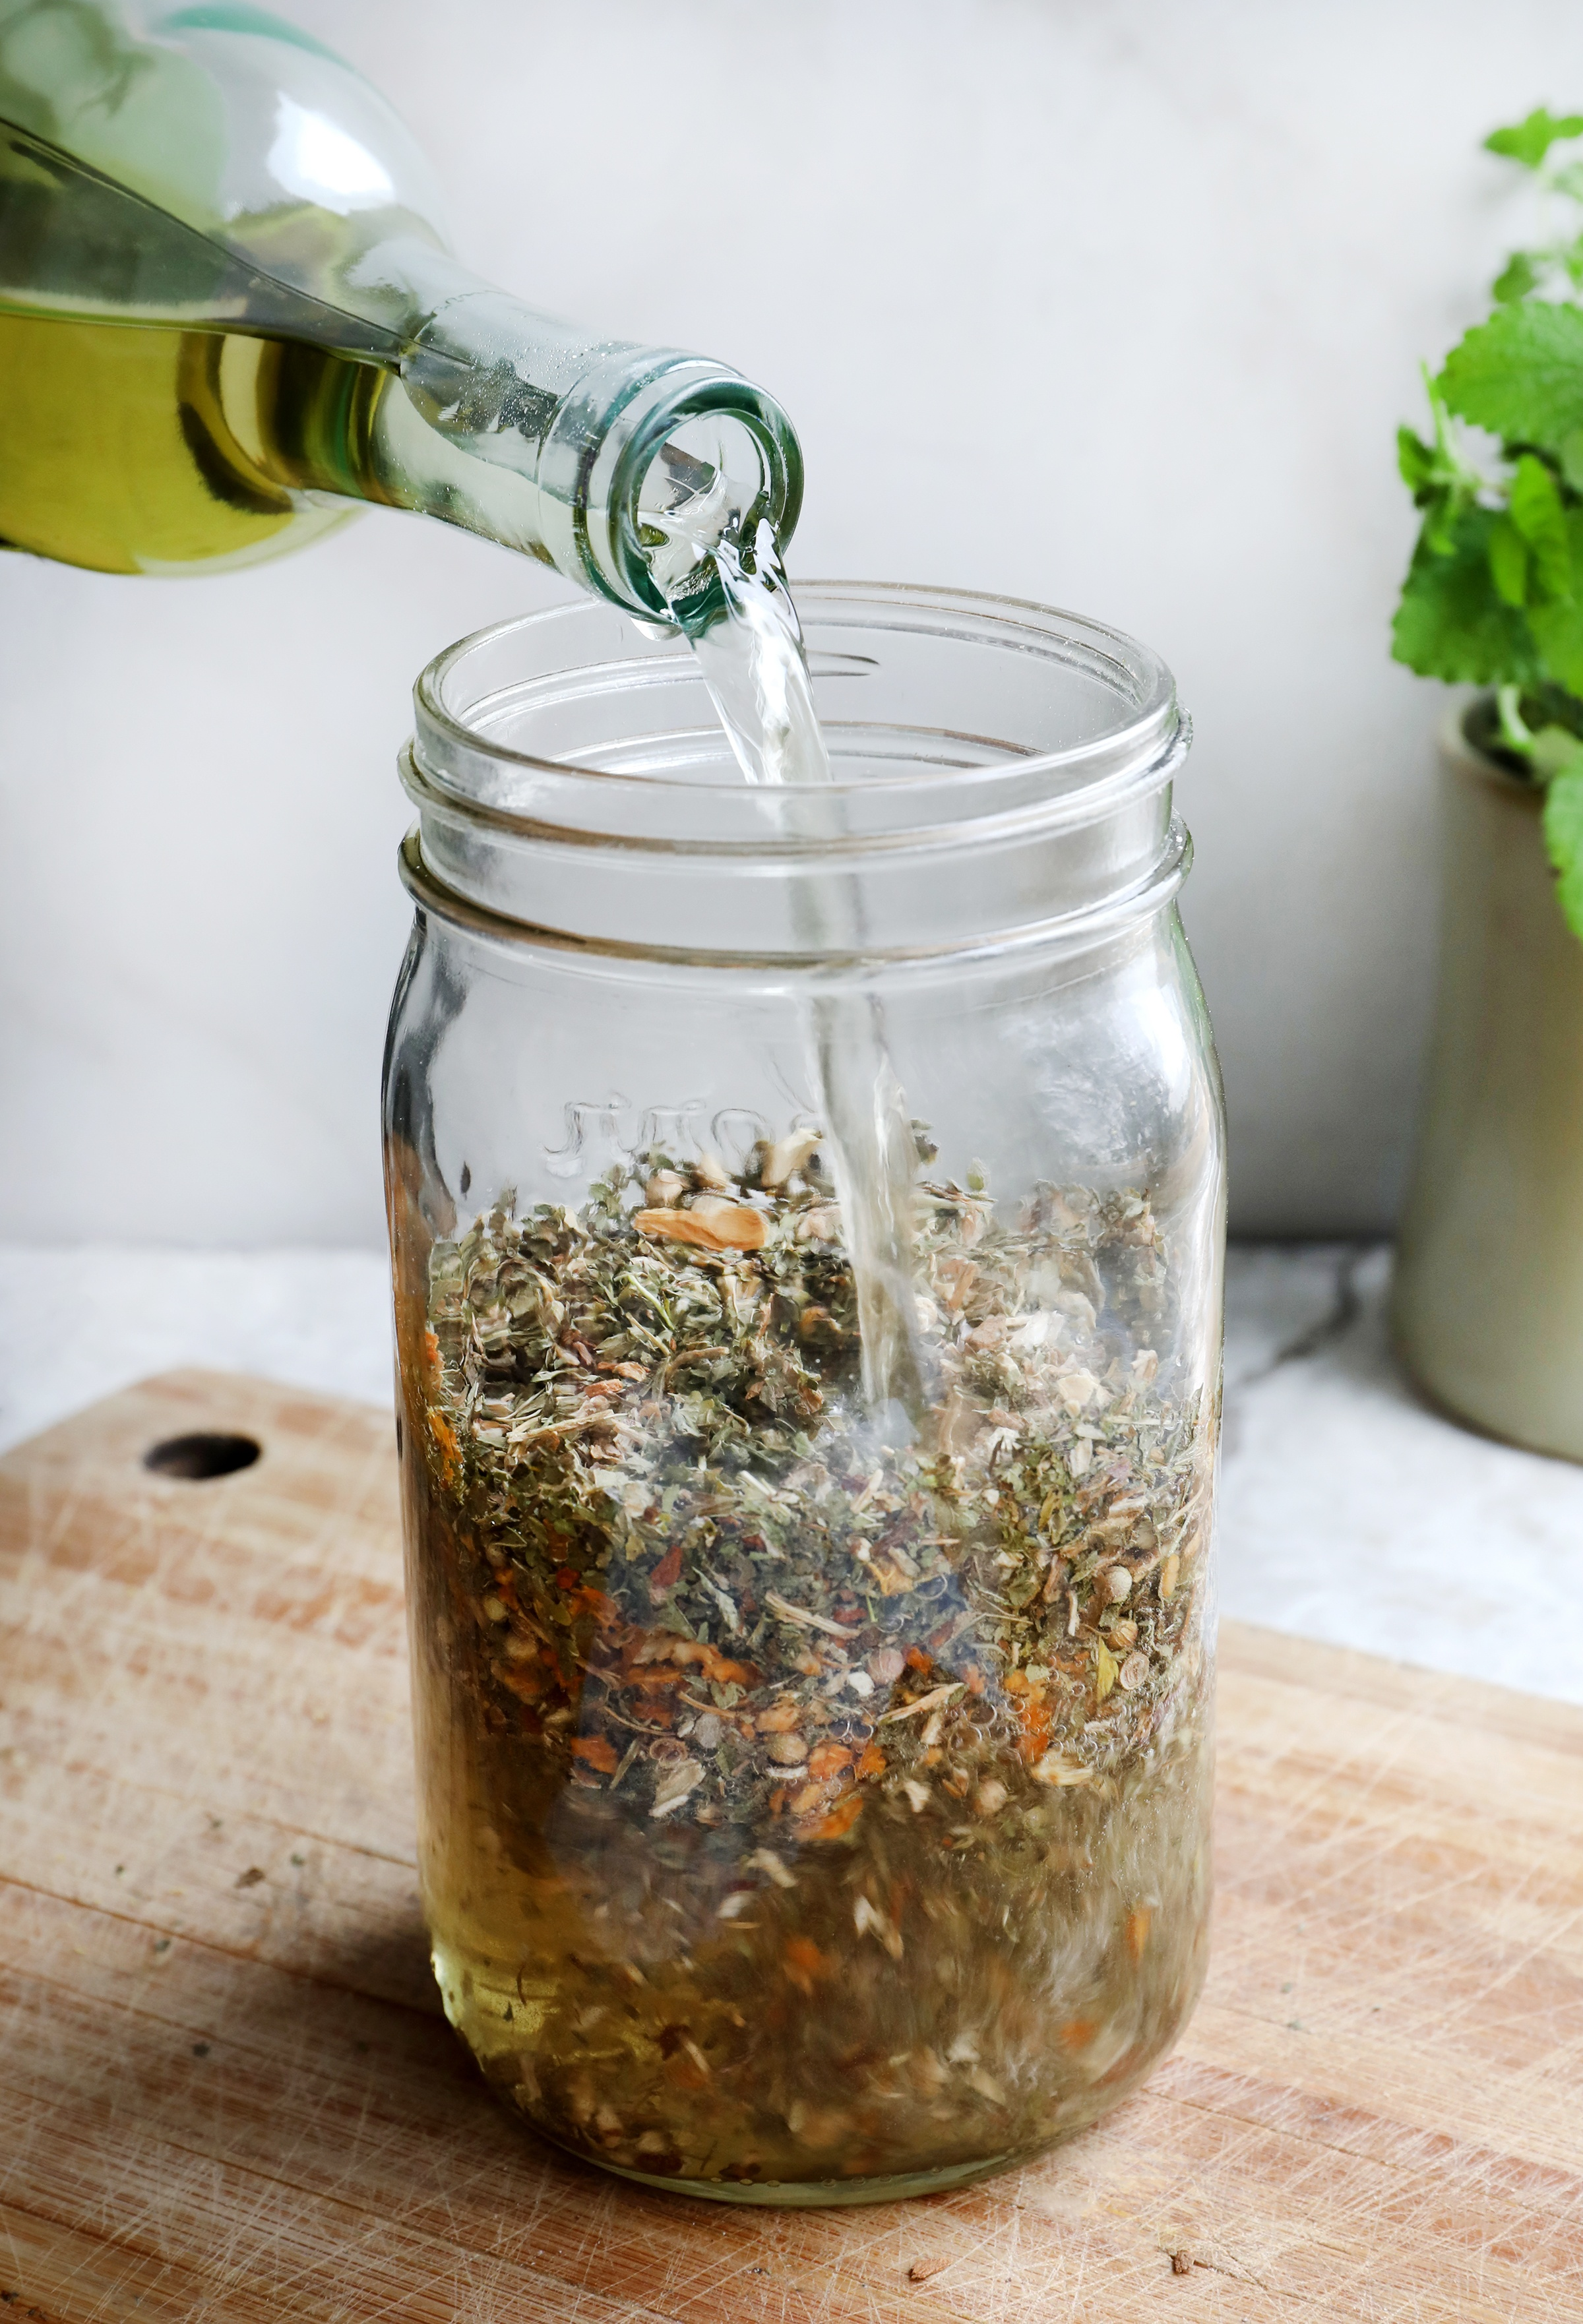 Pouring wine into a canning jar filled with dried herbs to make Carmelite water with lemon balm